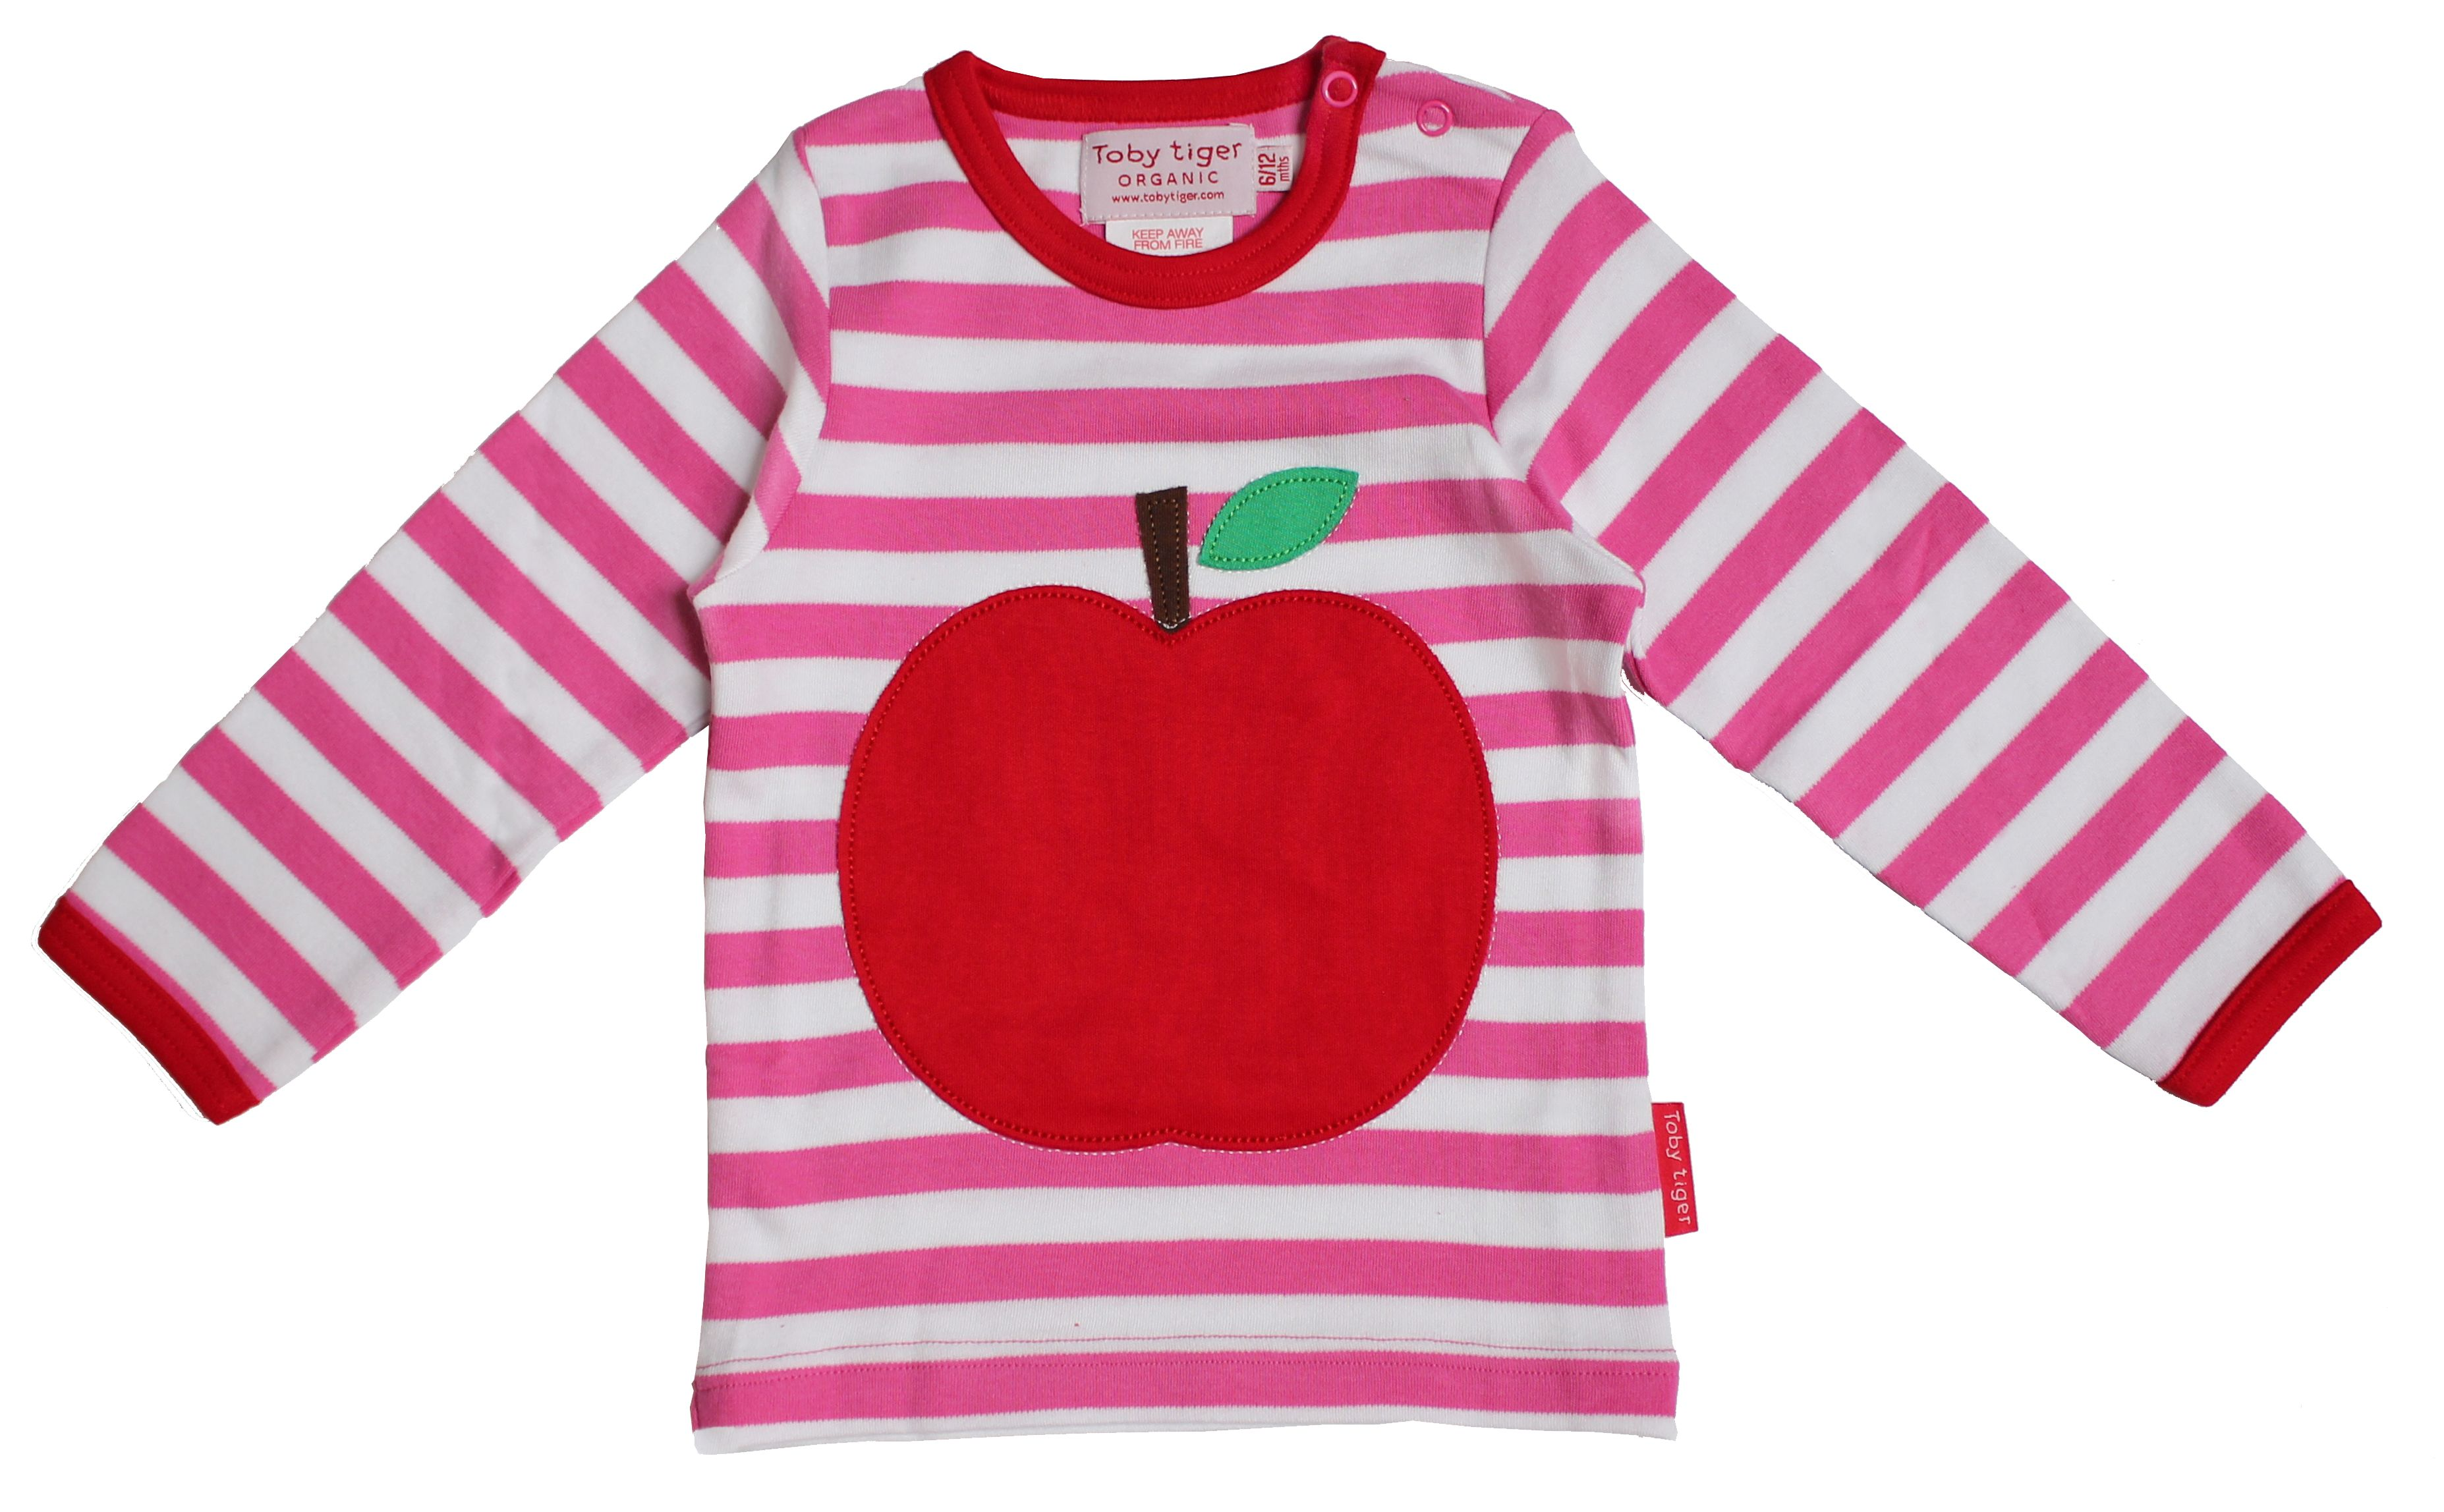 Toby Tiger Toby Tiger Baby girls apple applique t-shirt, Pink